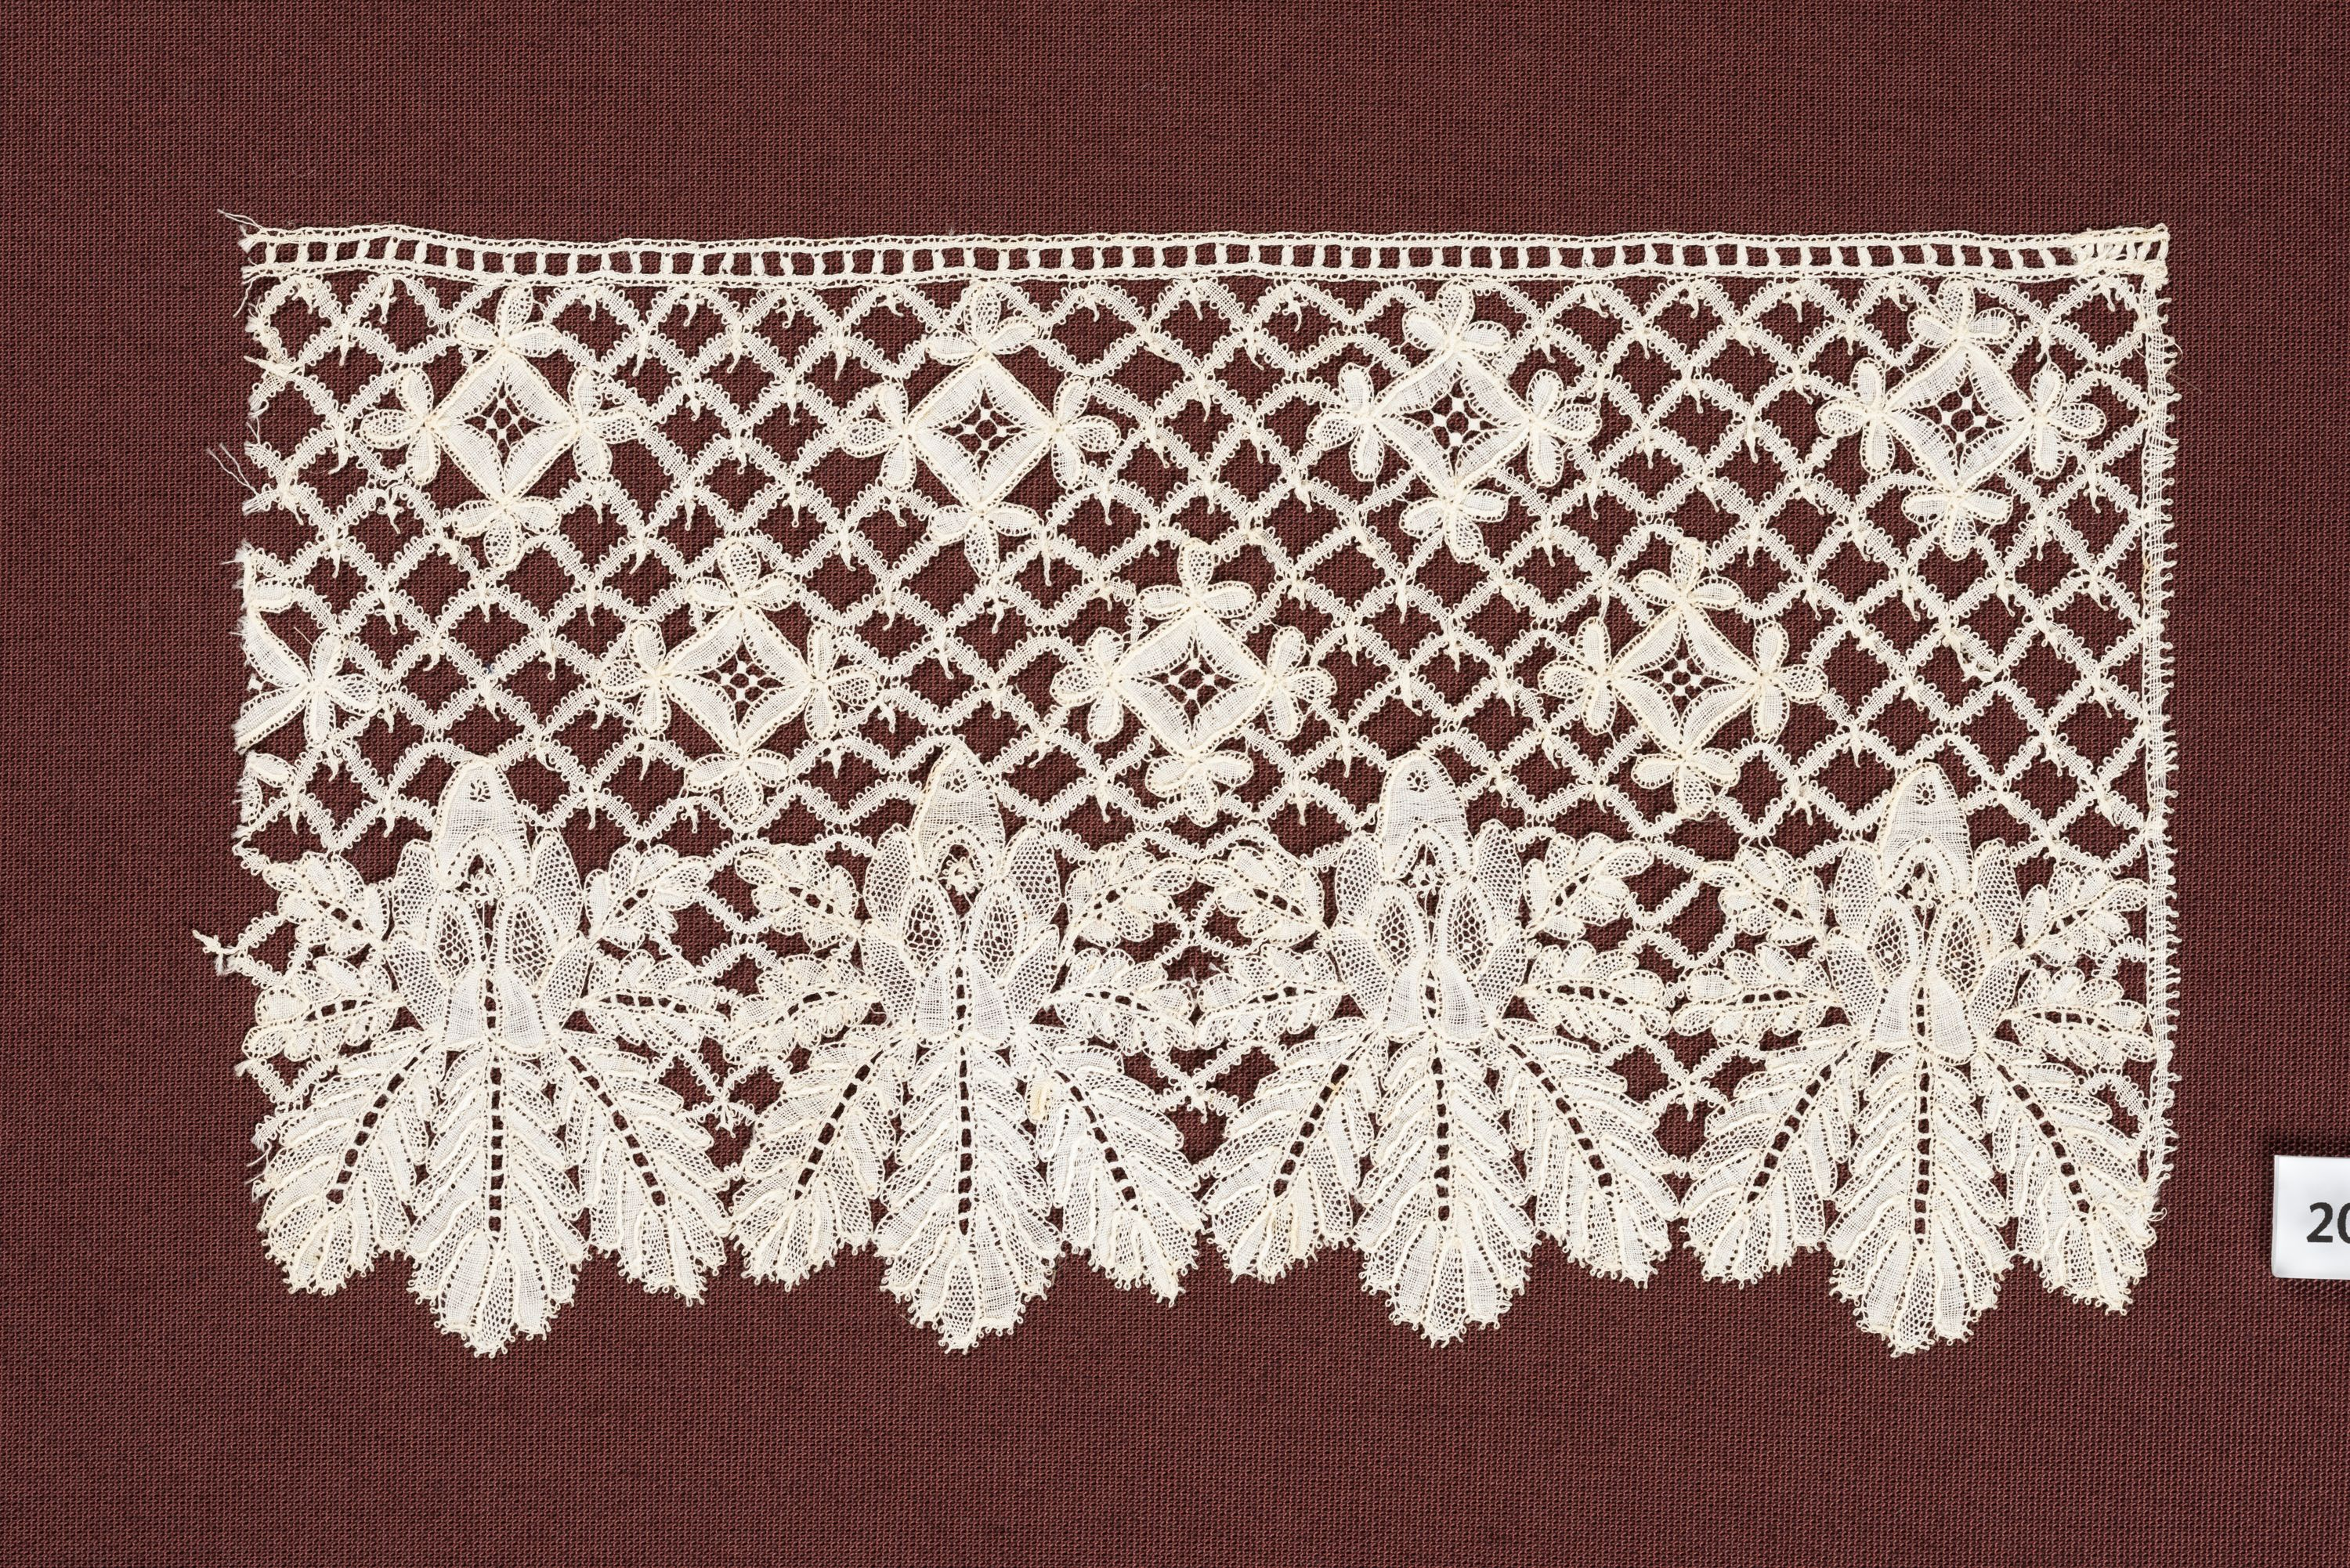 Charlotte Treadwin's lace, Finders Keepers? gallery